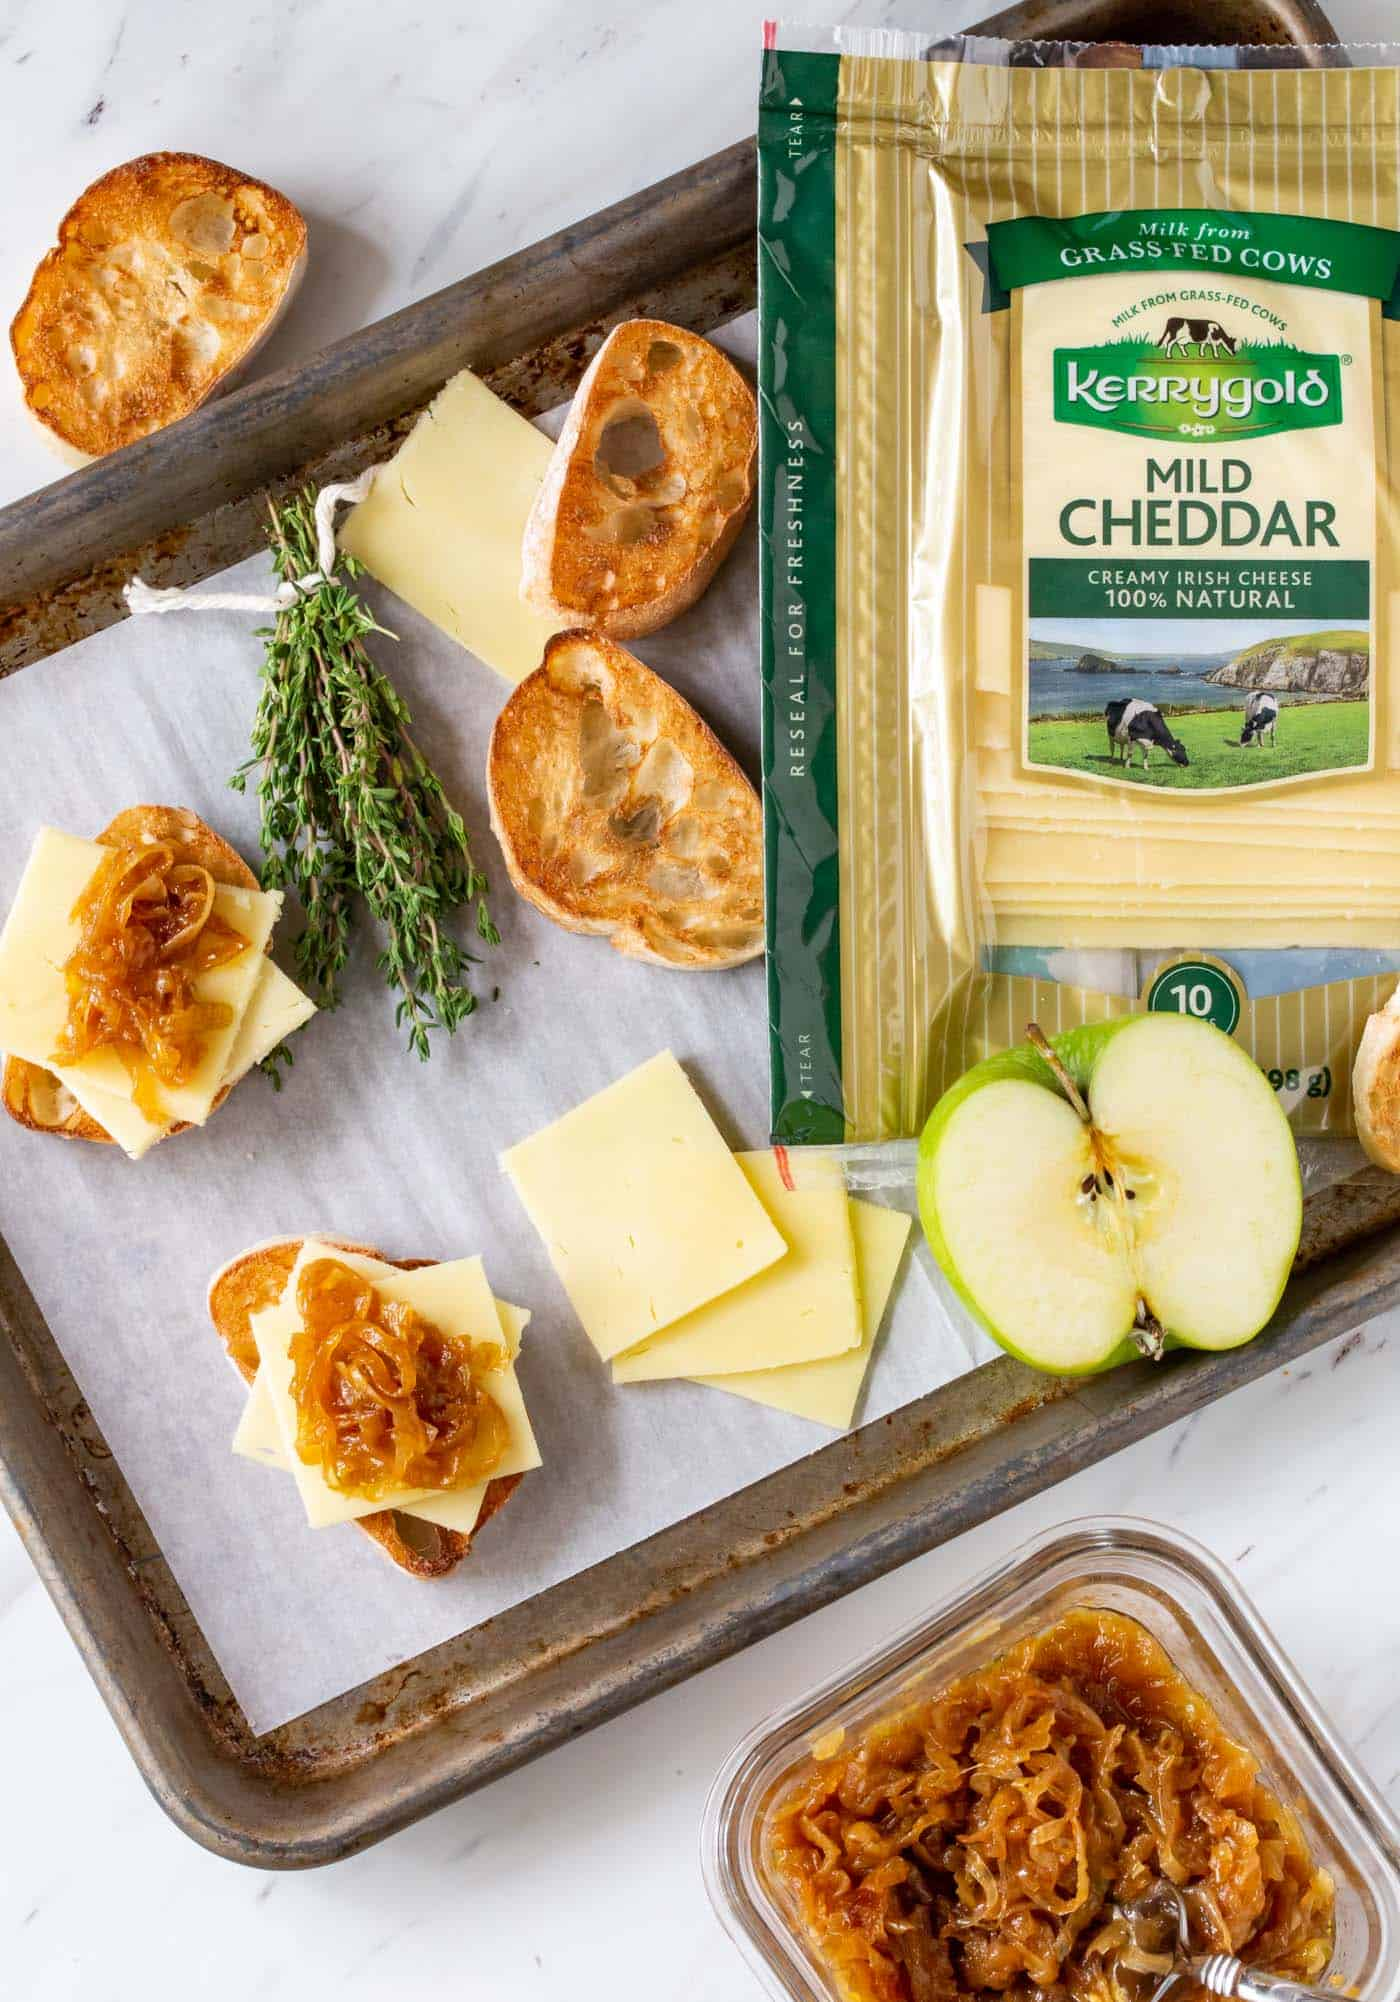 Toasted Cheese Crostini with Caramelized Onions, Apples and Thyme on a Sheet pan with Kerrygold Mild Cheddar Cheese slices.